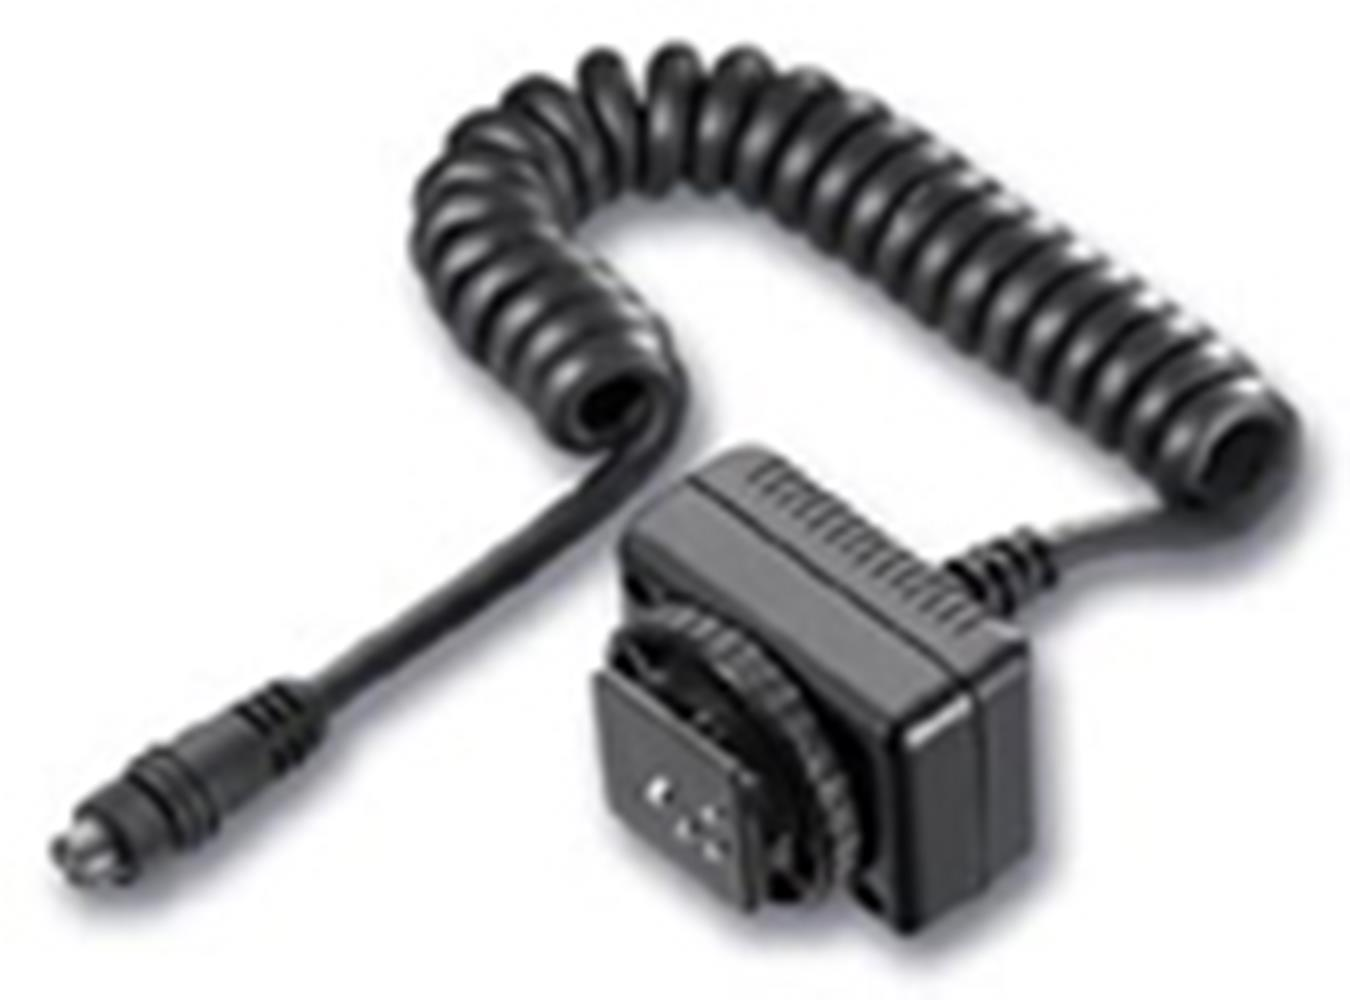 OLYMPUS FL-CB02 5-PIN TTL CABLE (FP-01)